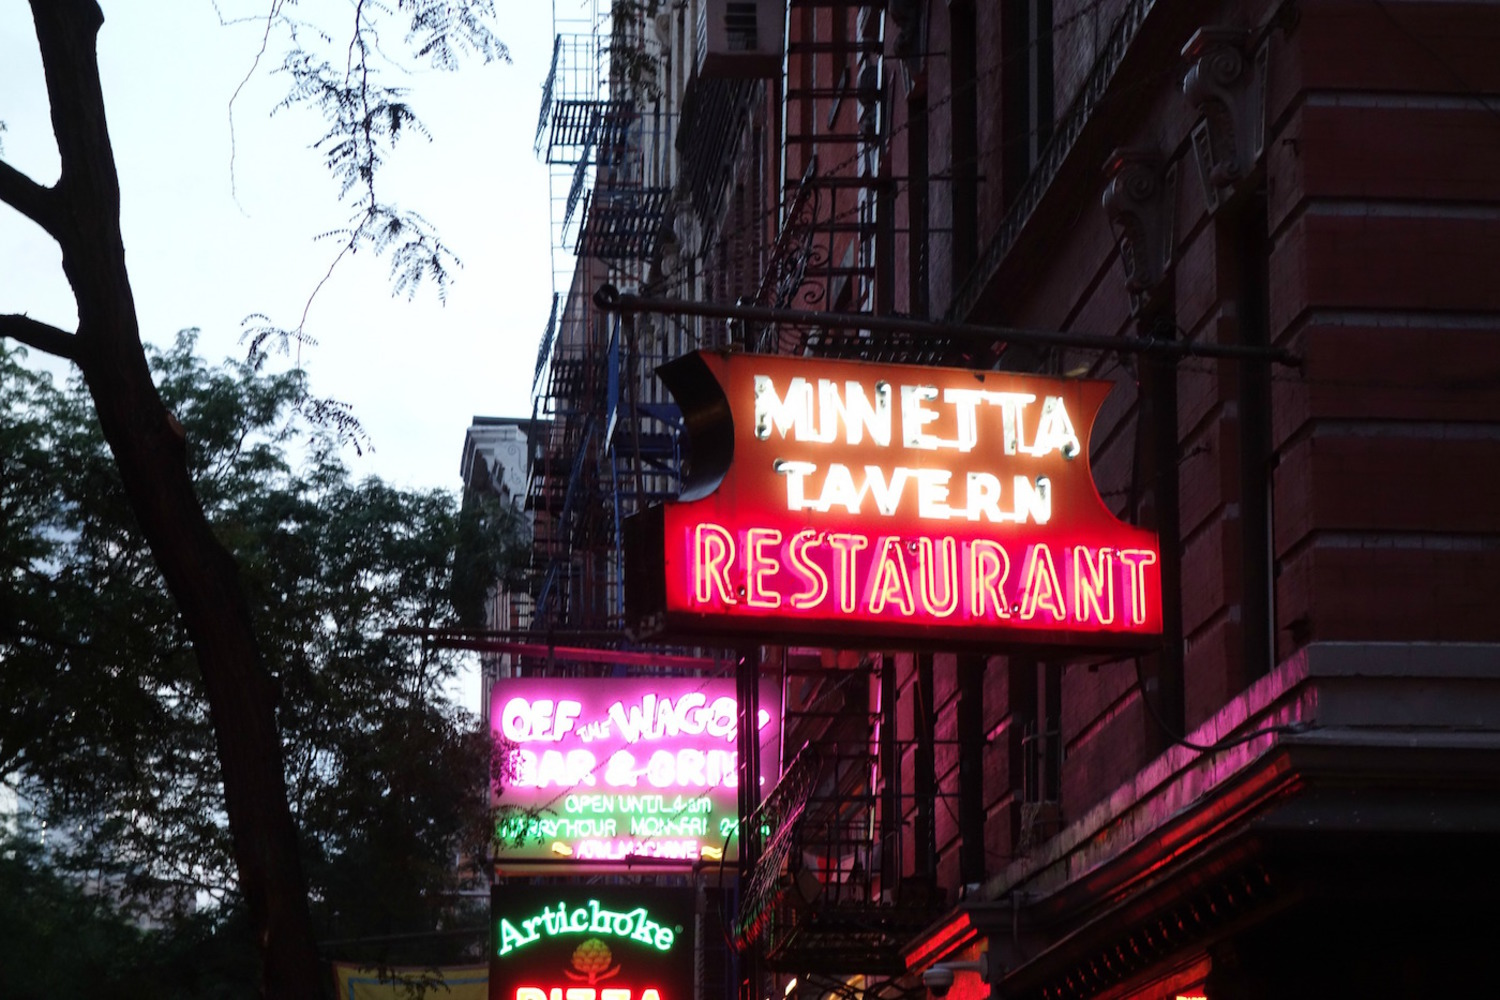 Neon signs on MacDougal Street